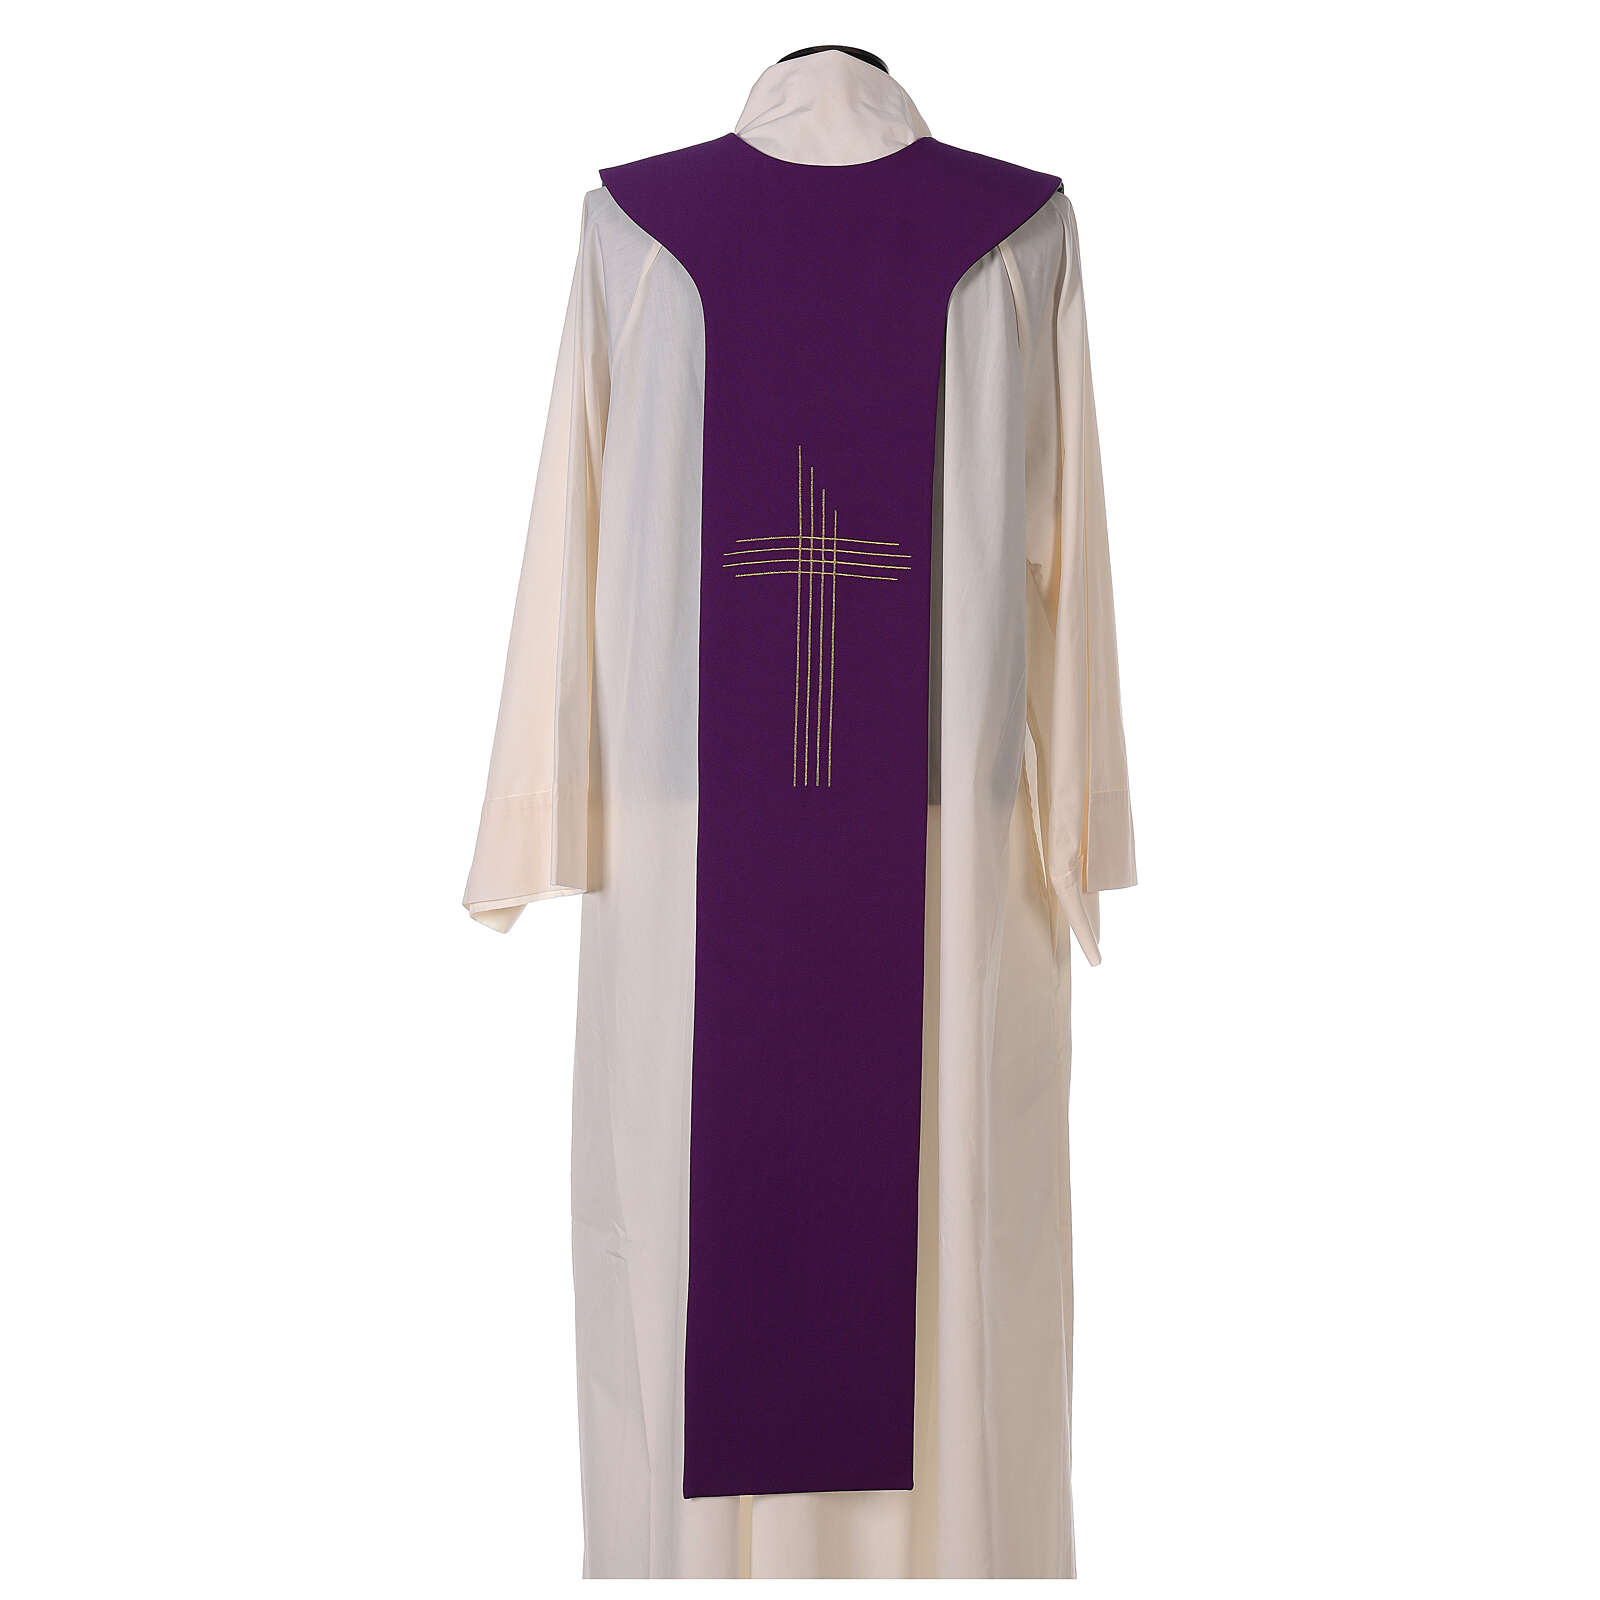 Liturgical tristole two-colored green and purple crosses 100% polyester 4